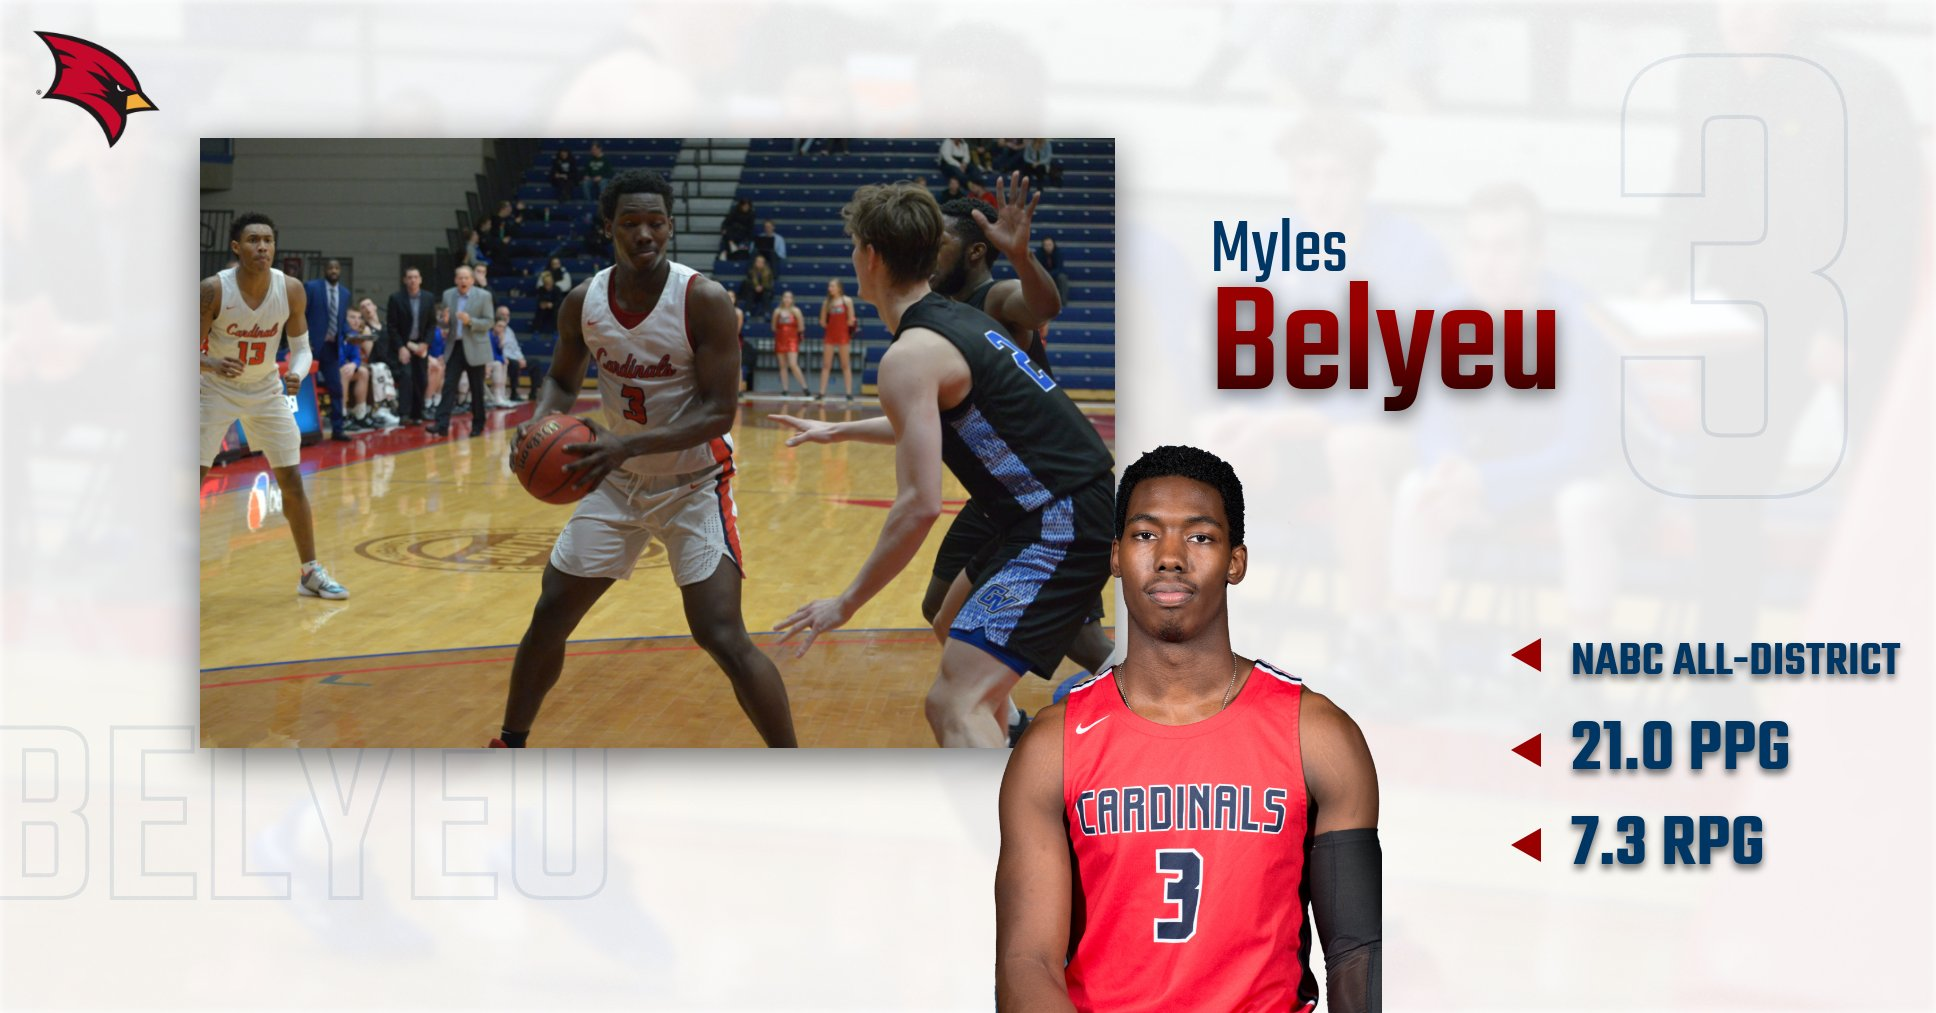 Myles Belyeu Earns NABC All-District Honors